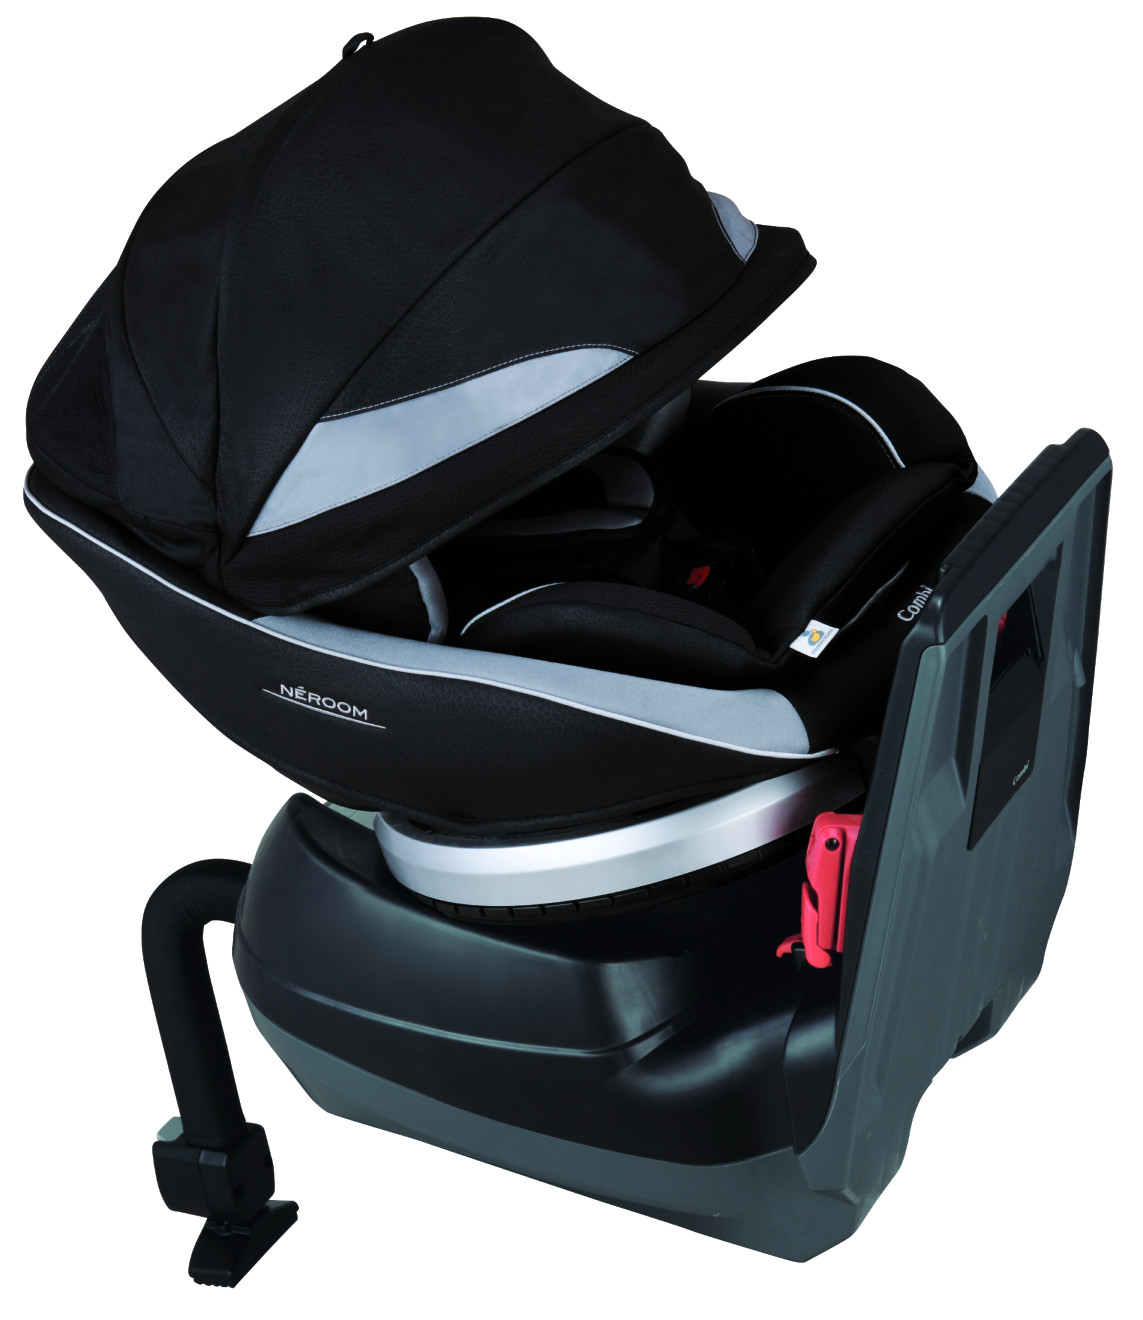 Combi cradling 360 car seat boosters for baby